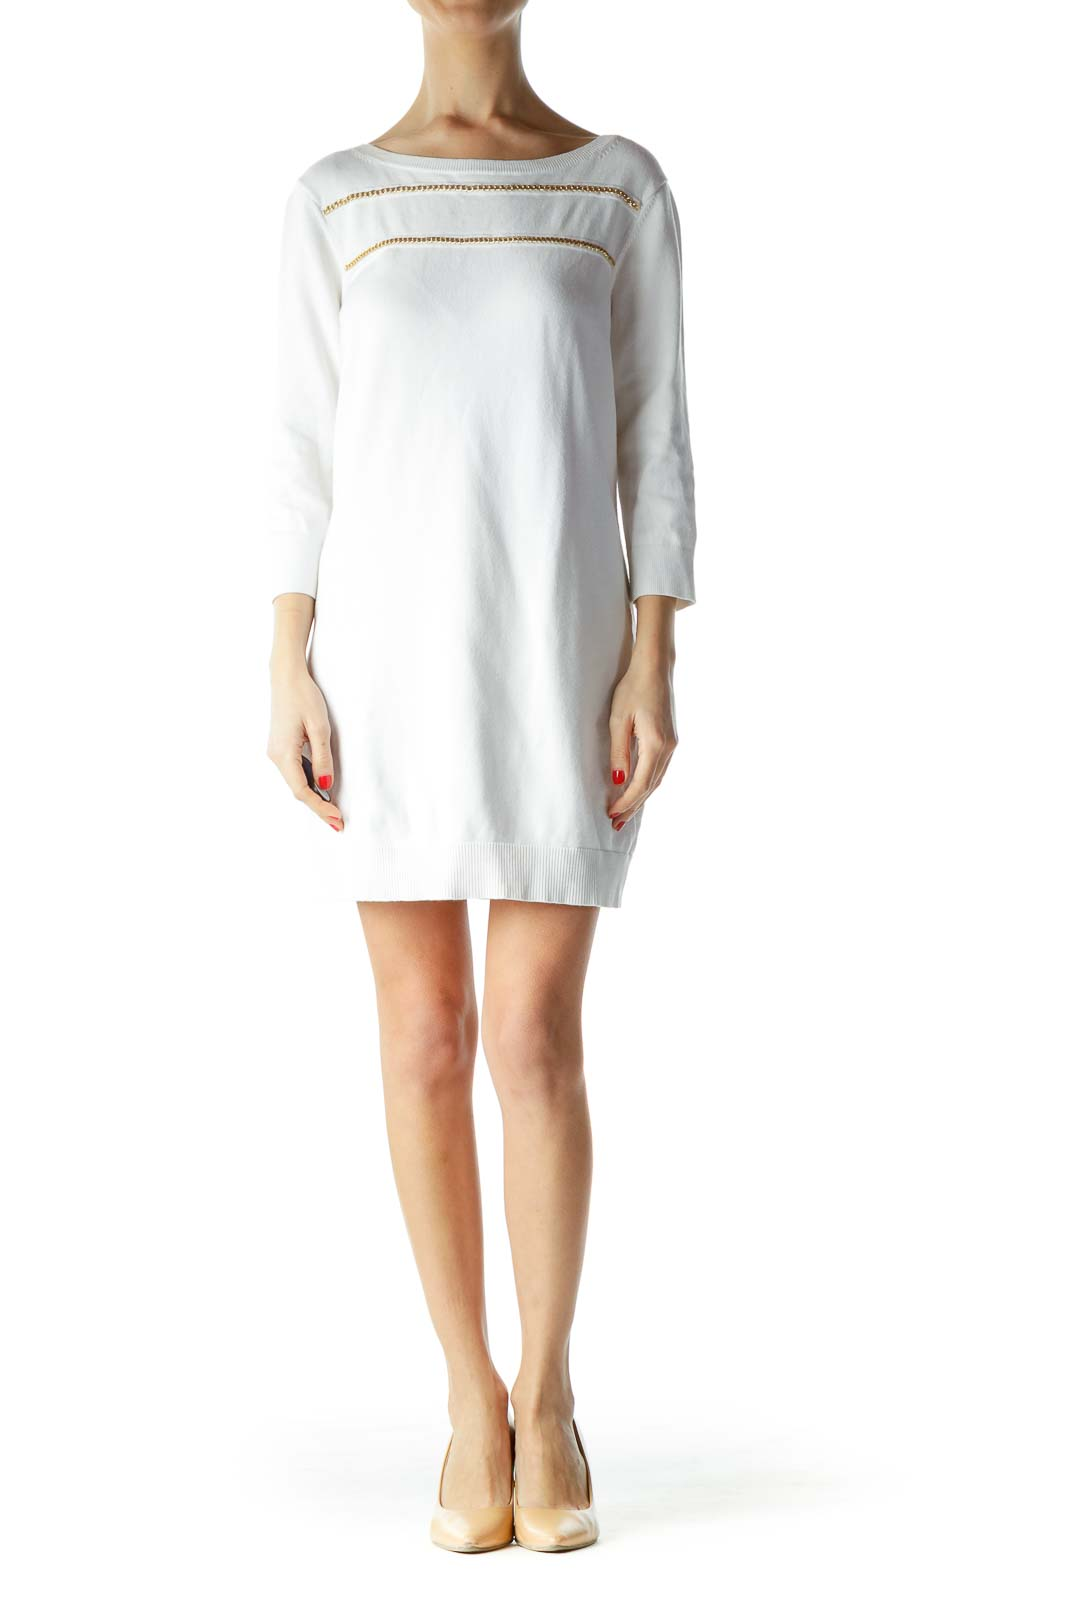 White Gold Chain 3/4 Sleeve Knit Dress